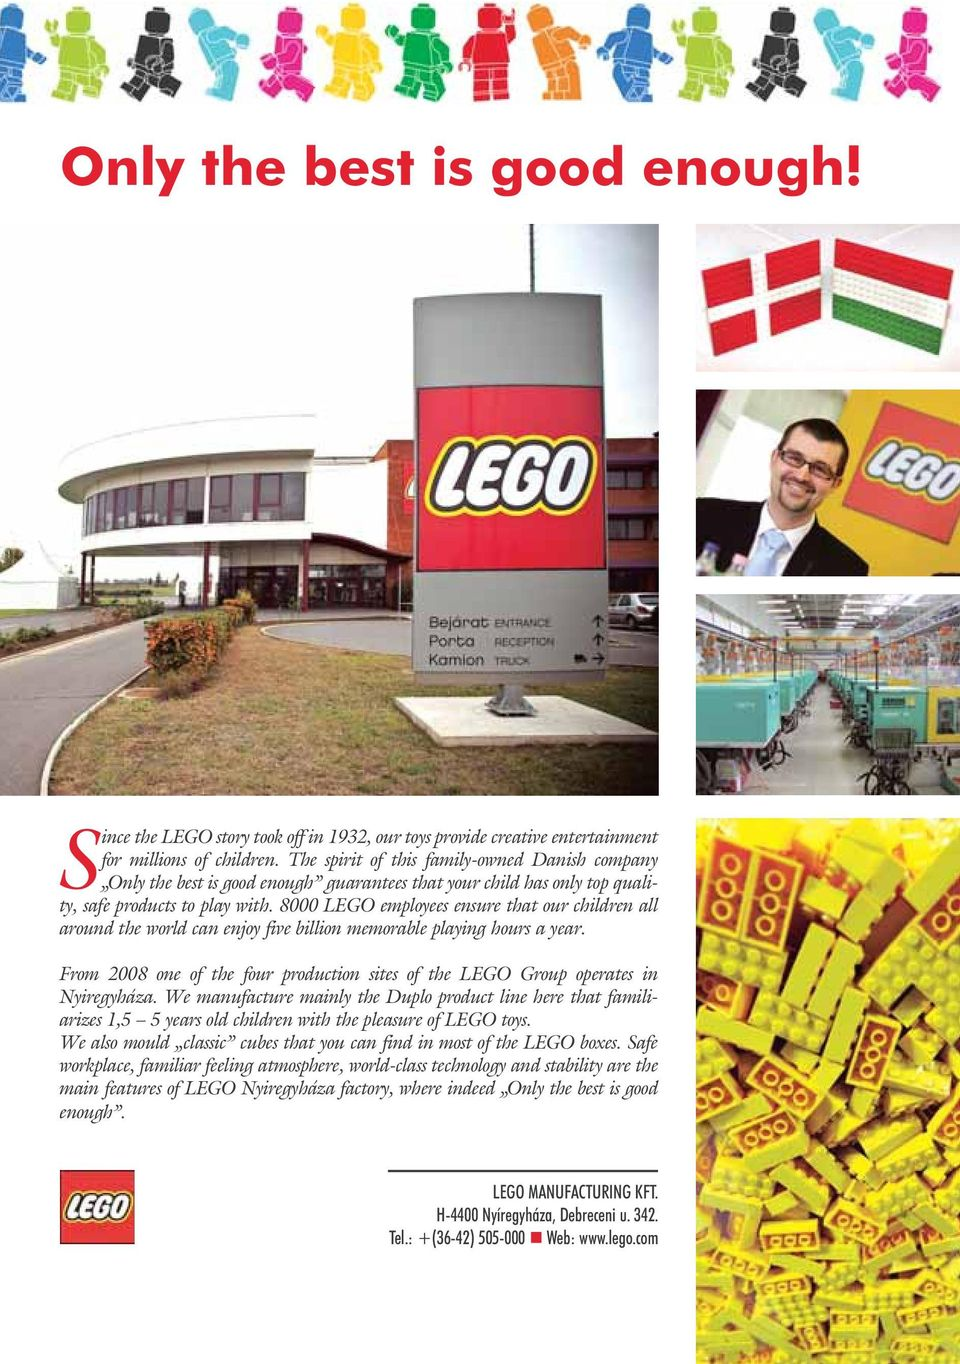 8000 LEGO employees ensure that our children all around the world can enjoy five billion memorable playing hours a year.